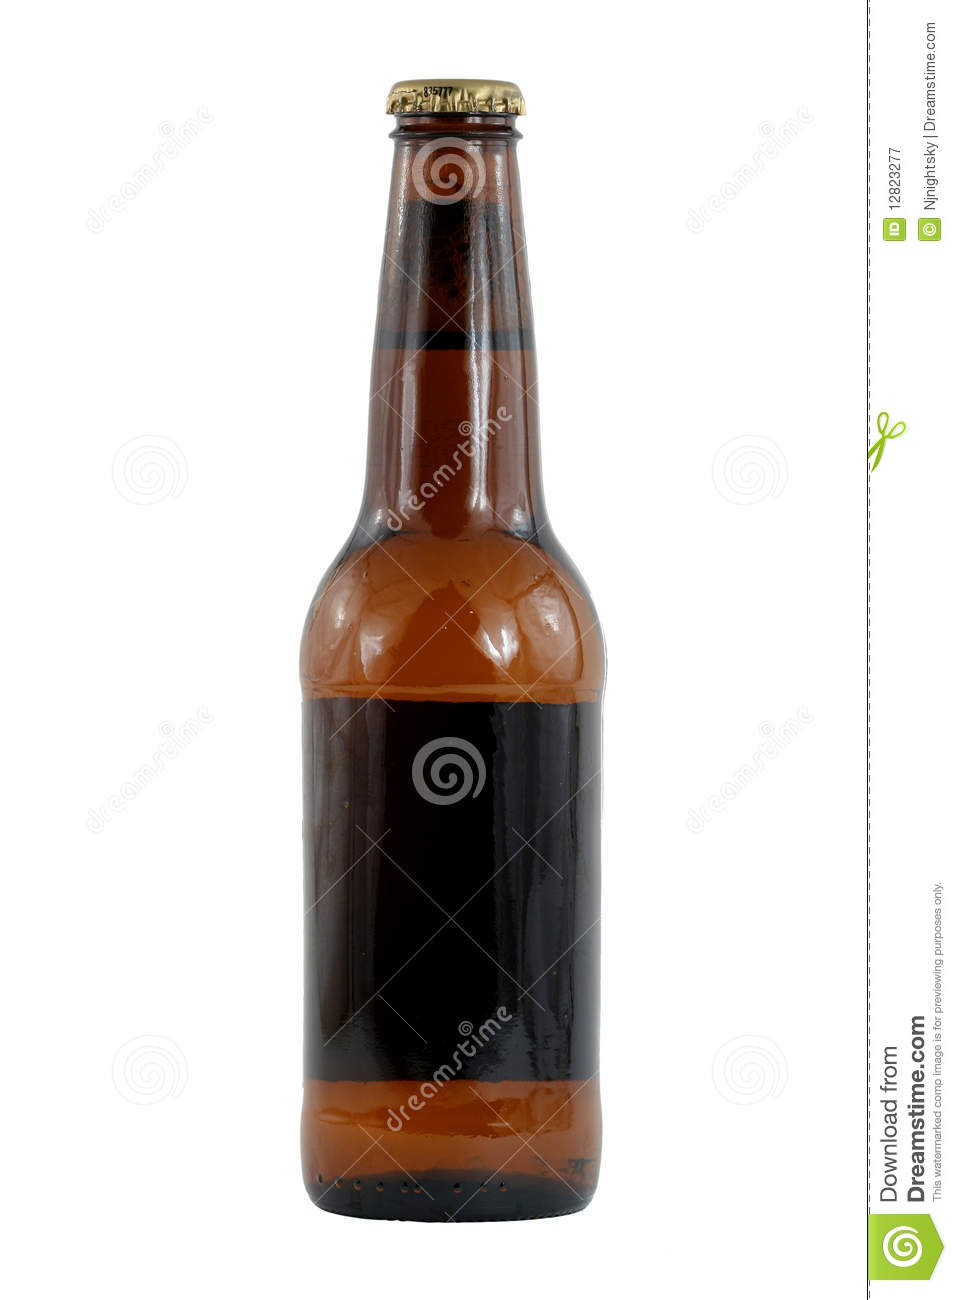 Brown beer bottle royalty free stock photography image 12823277